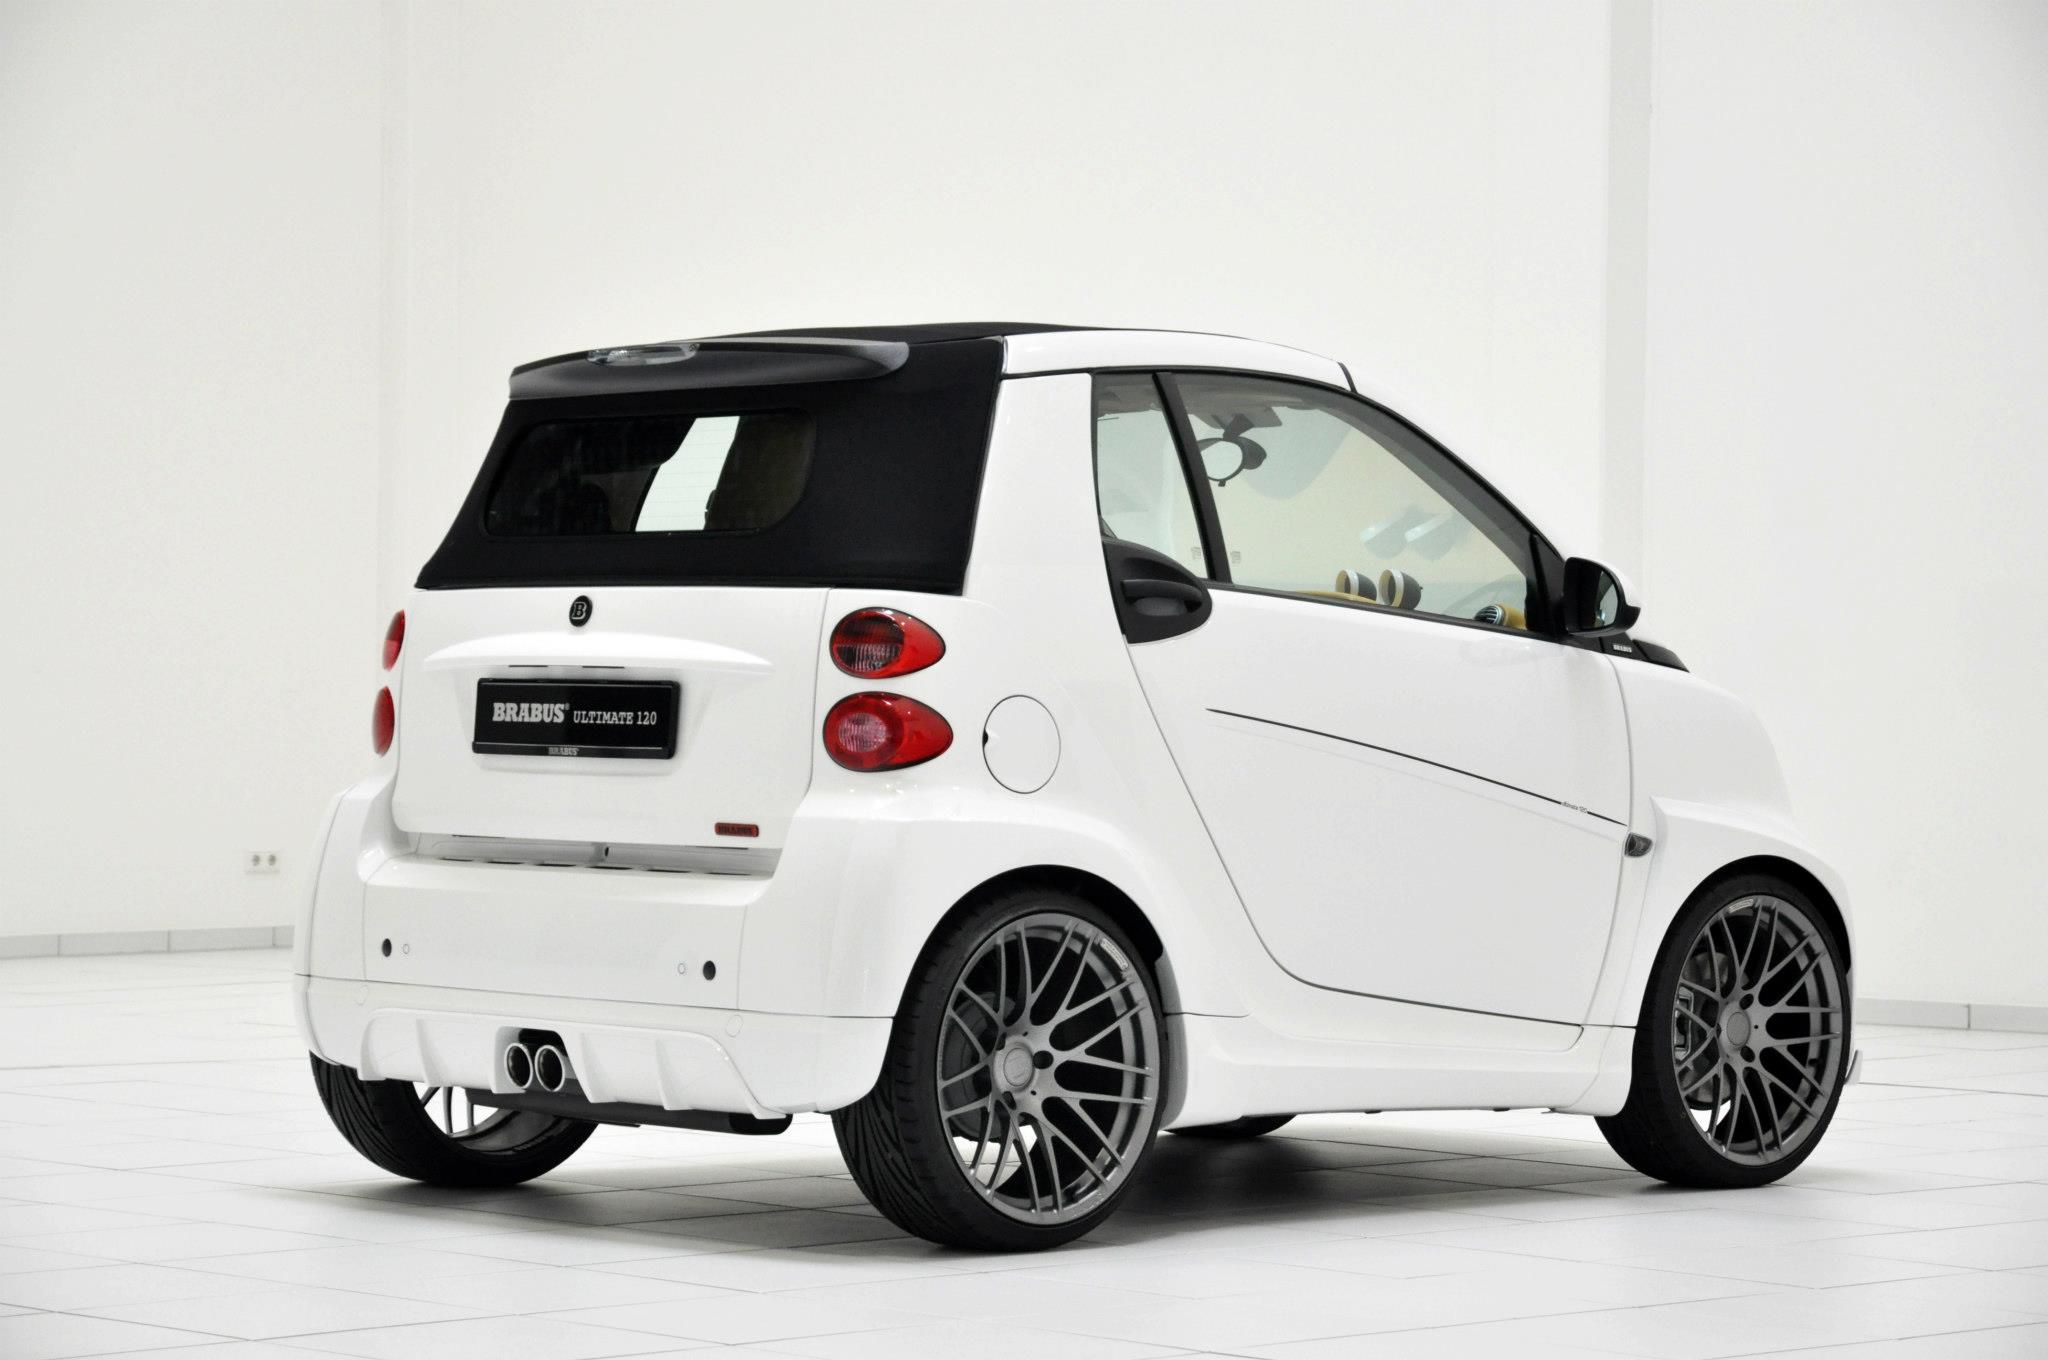 smart brabus ultimate 120 smart fortwo tuning pinterest smart brabus and 120. Black Bedroom Furniture Sets. Home Design Ideas